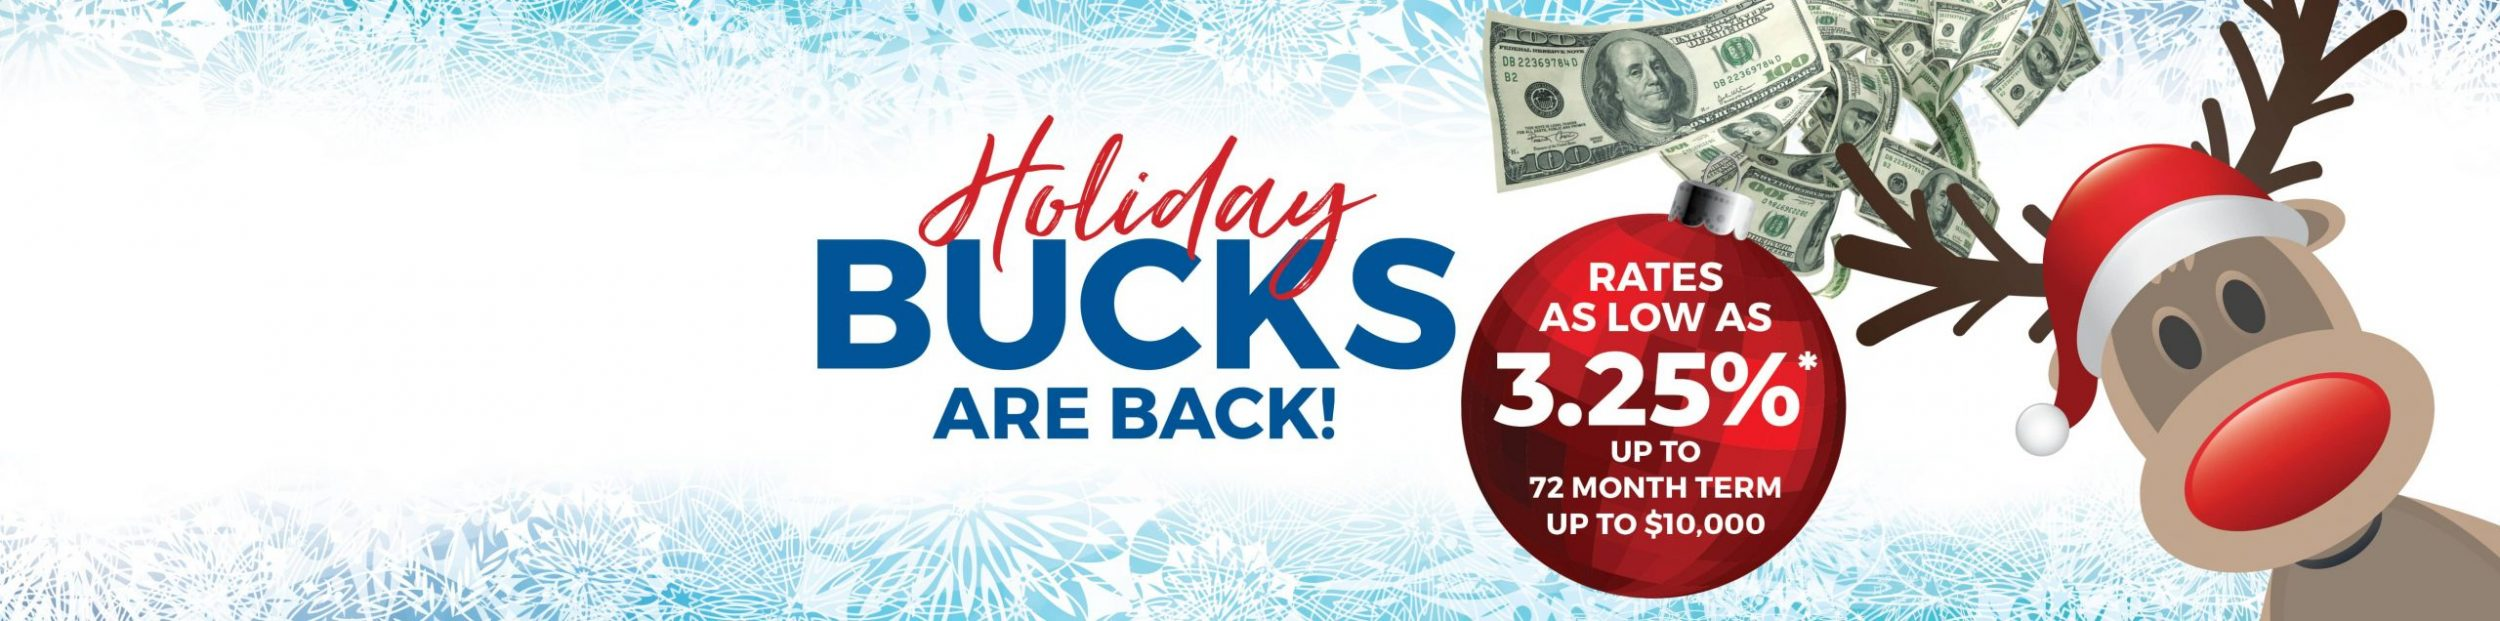 Holiday bucks landing page banner featuring a red nose reindeer wearing a santa clause hat.